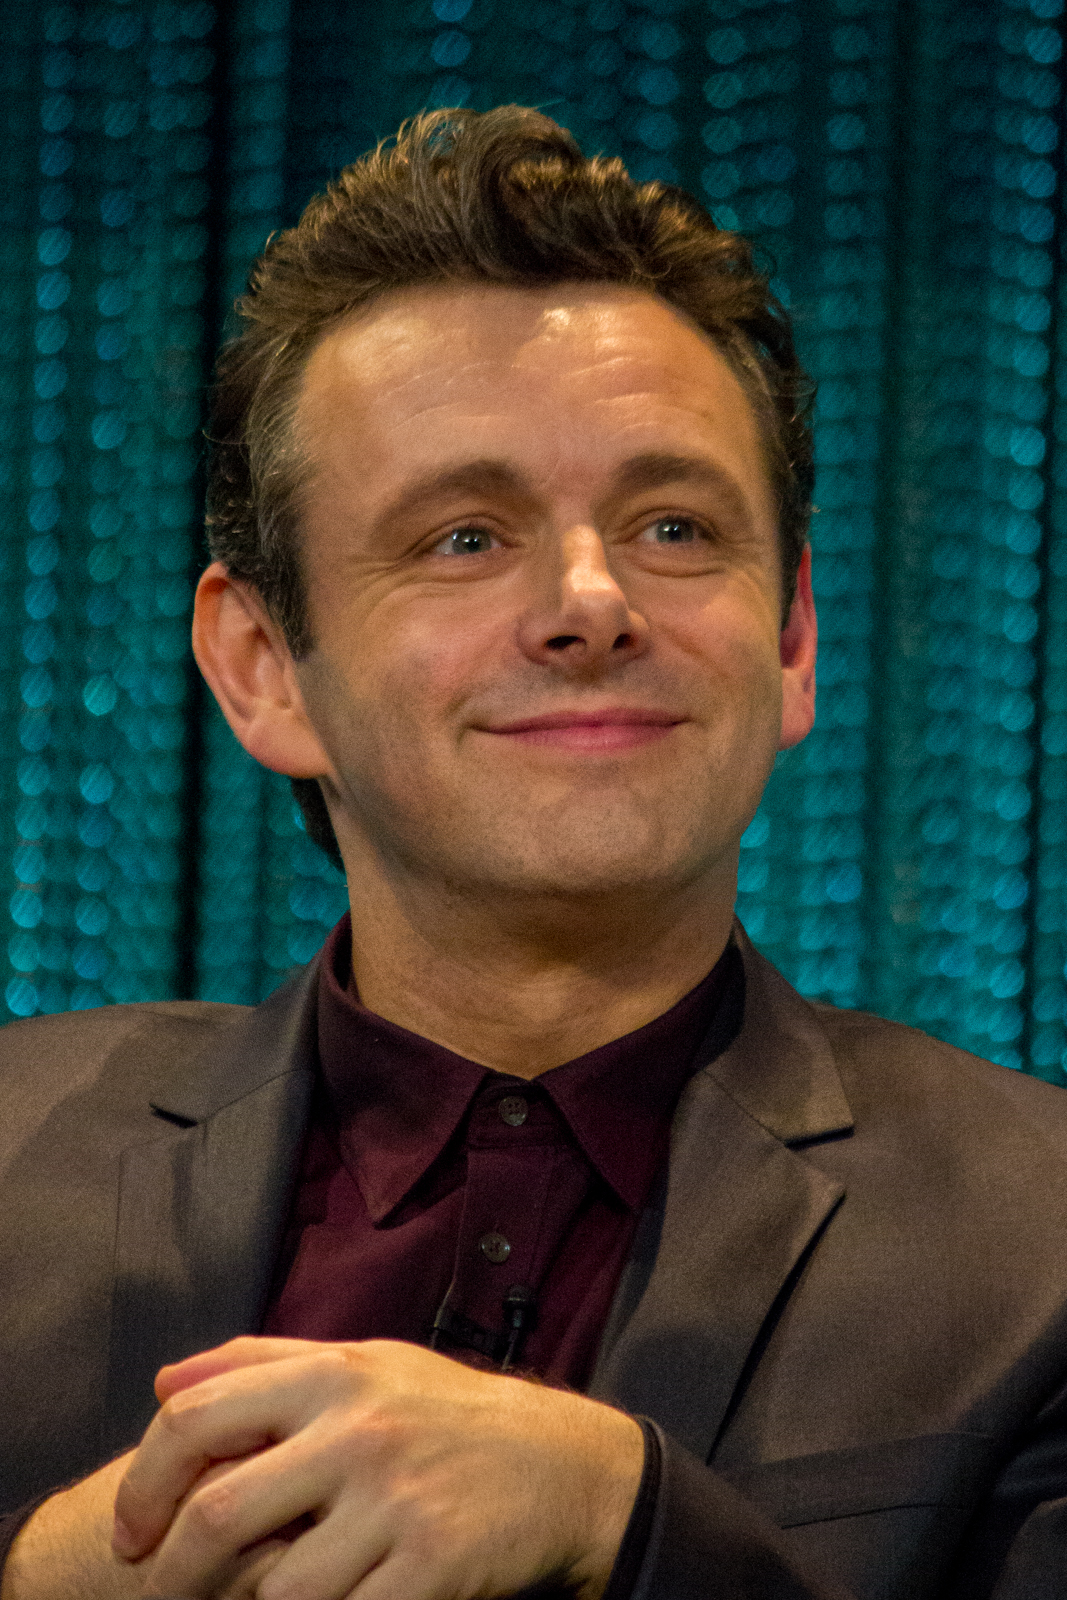 Michael Sheen (born 1969)